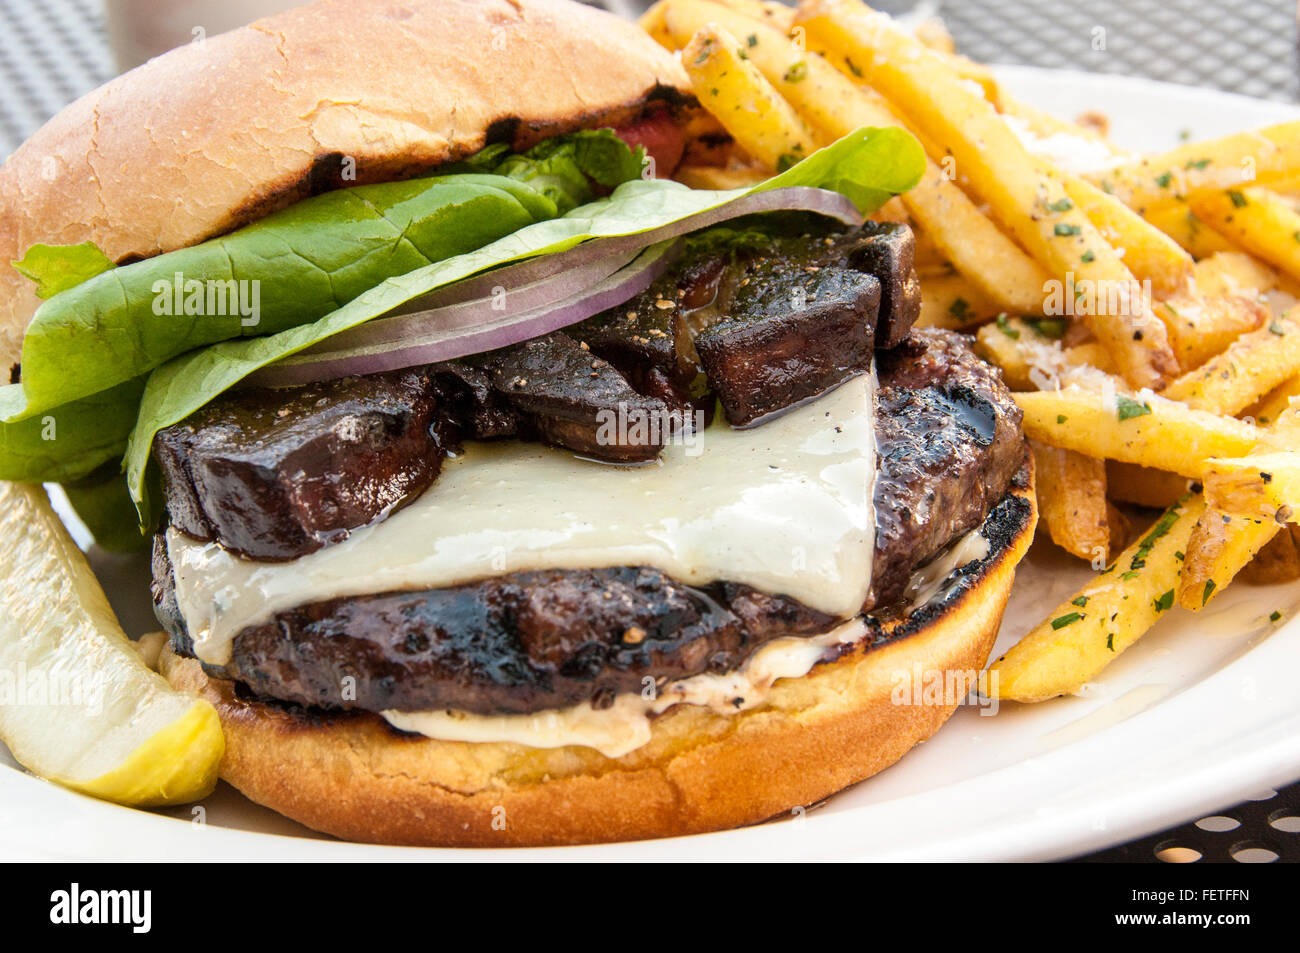 Truffle Pig burger with Foie Gras and truffle fries, Truffle Pig Restaurant, One Steamboat Place, Steamboat Springs, - Stock Image